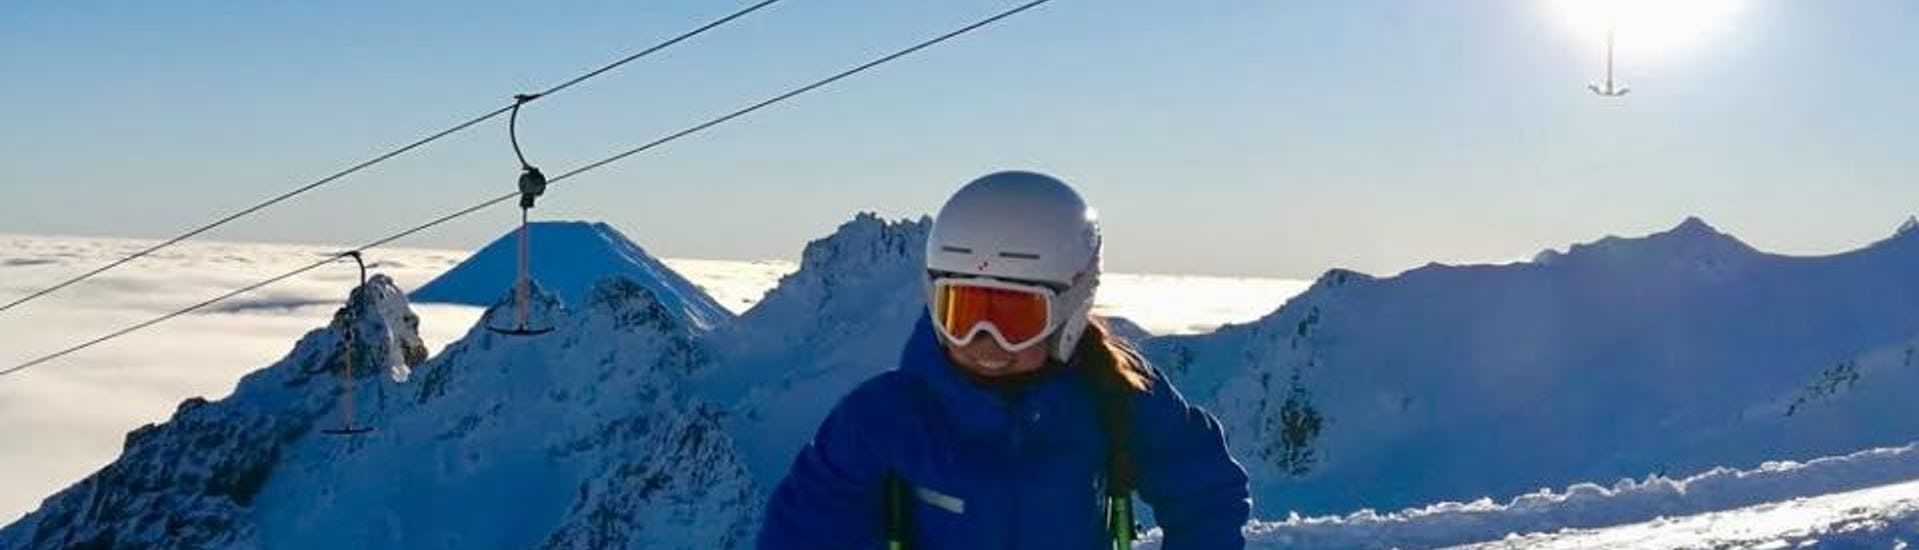 Ski Instructor Private for Kids (from 4 years) - All Levels